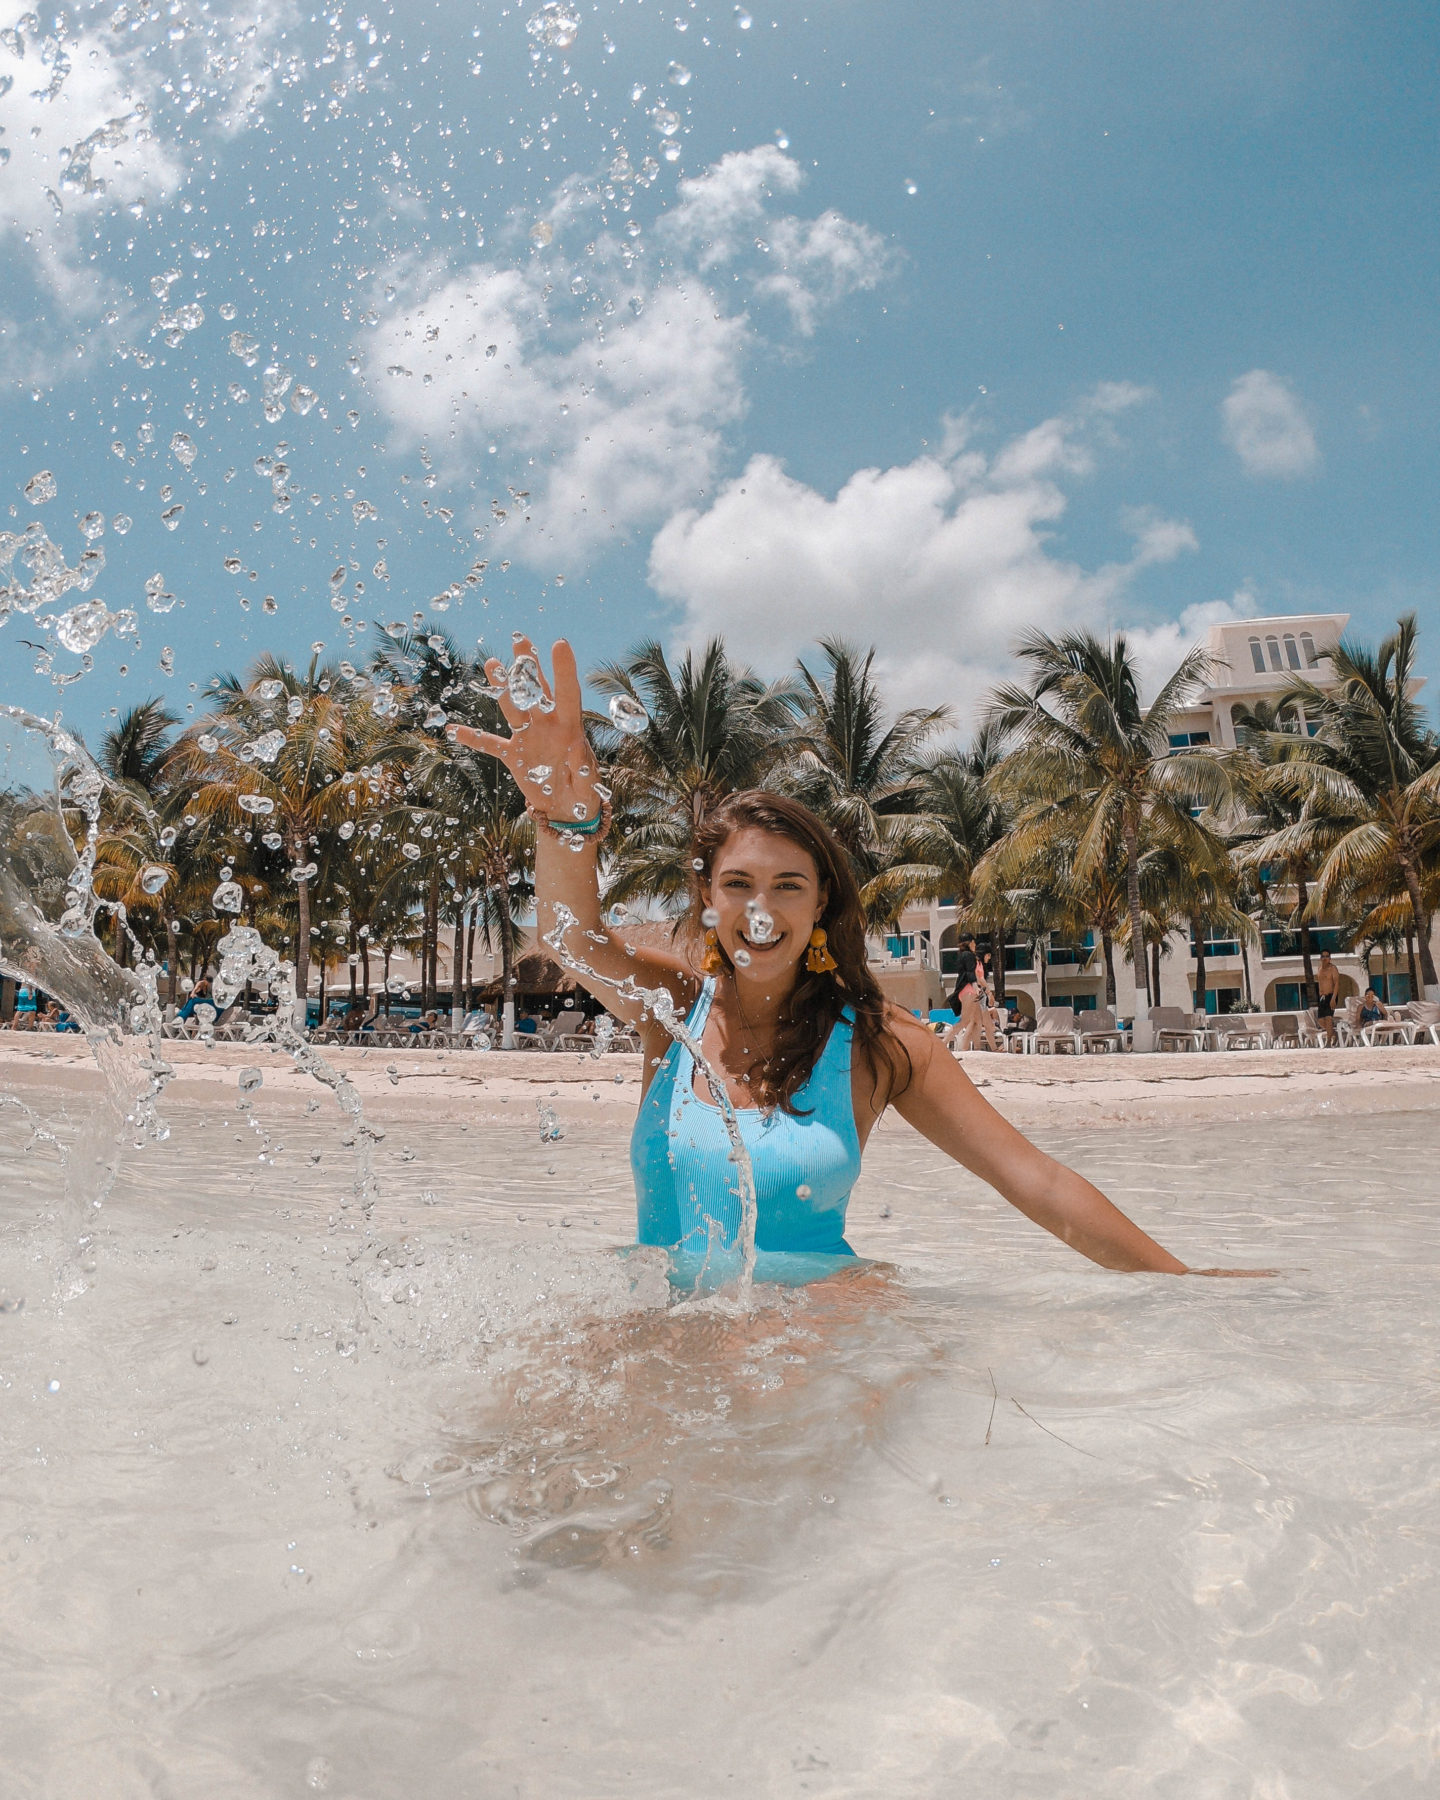 Where To Stay In Cancun: Occidental Costa Cancun Mexico